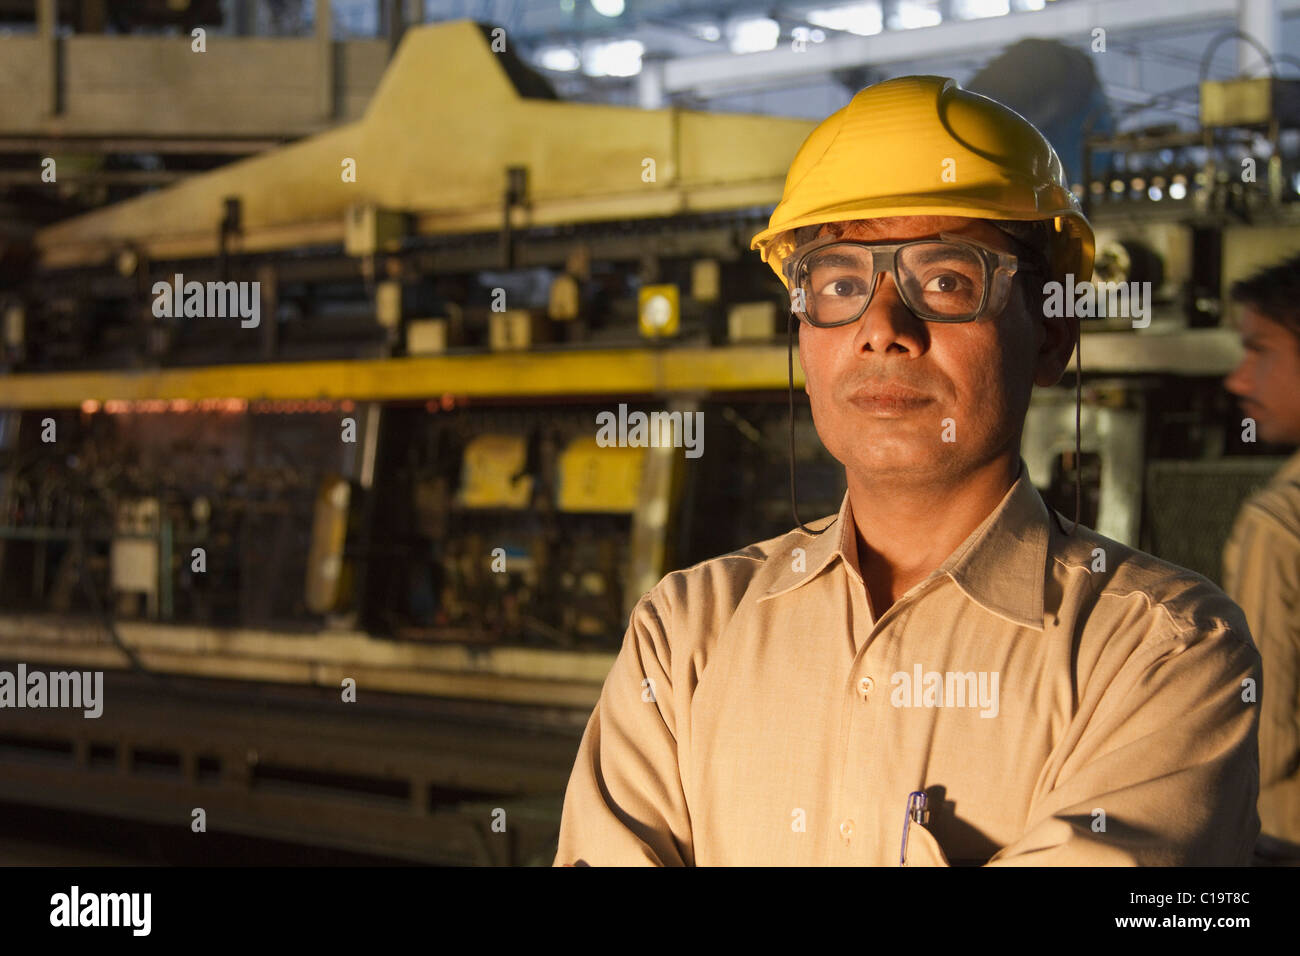 Portrait of a male engineer in a factory, Surya Roshni Limited, Gwalior, Madhya Pradesh, India - Stock Image